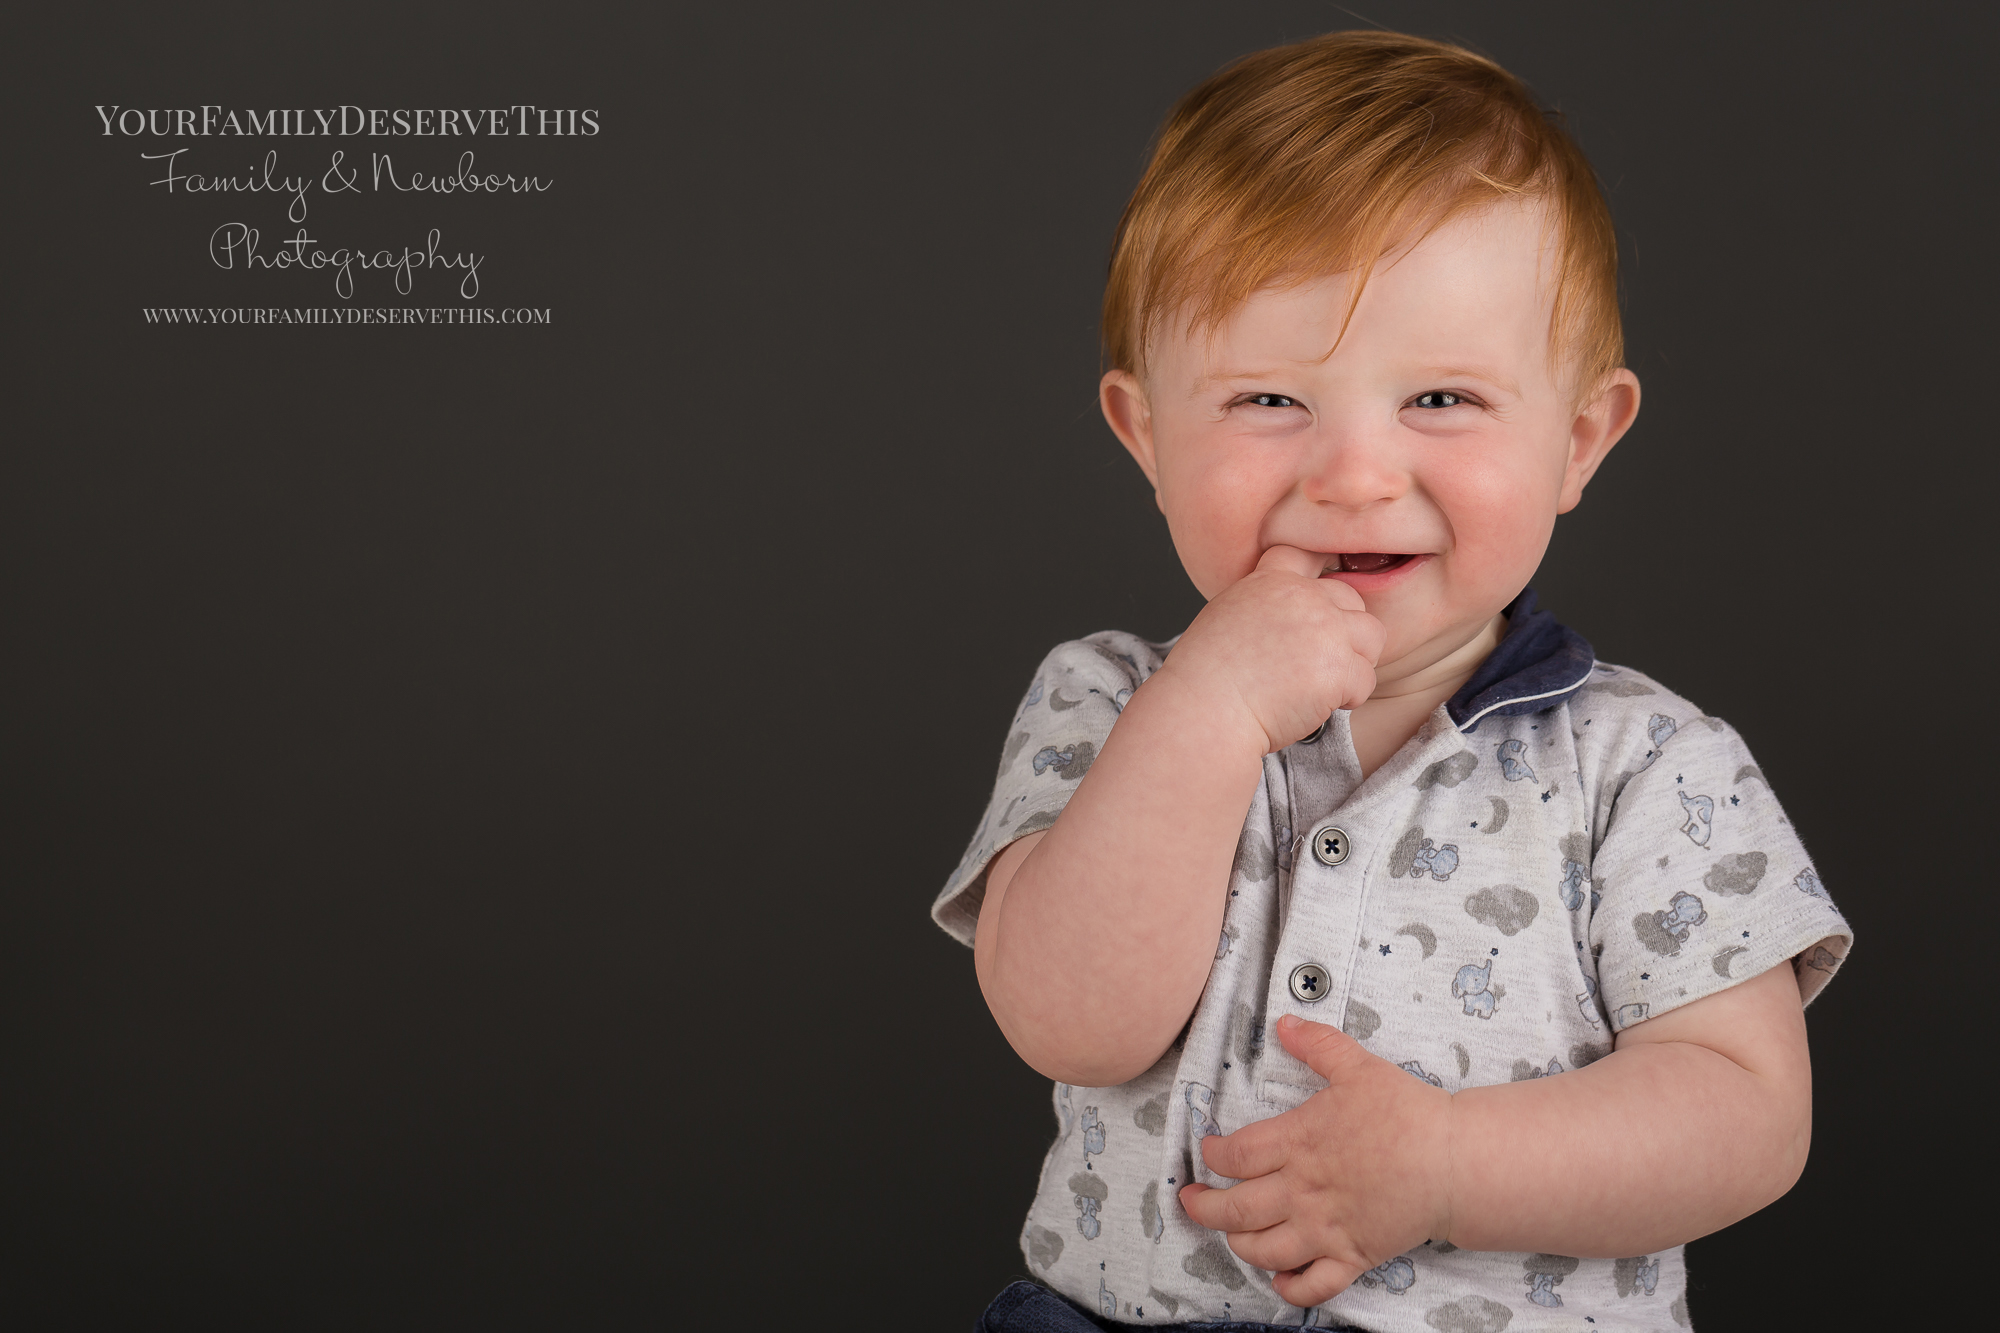 Gorgeous close up portraits of your little one are included in their First Birthday Photoshoot